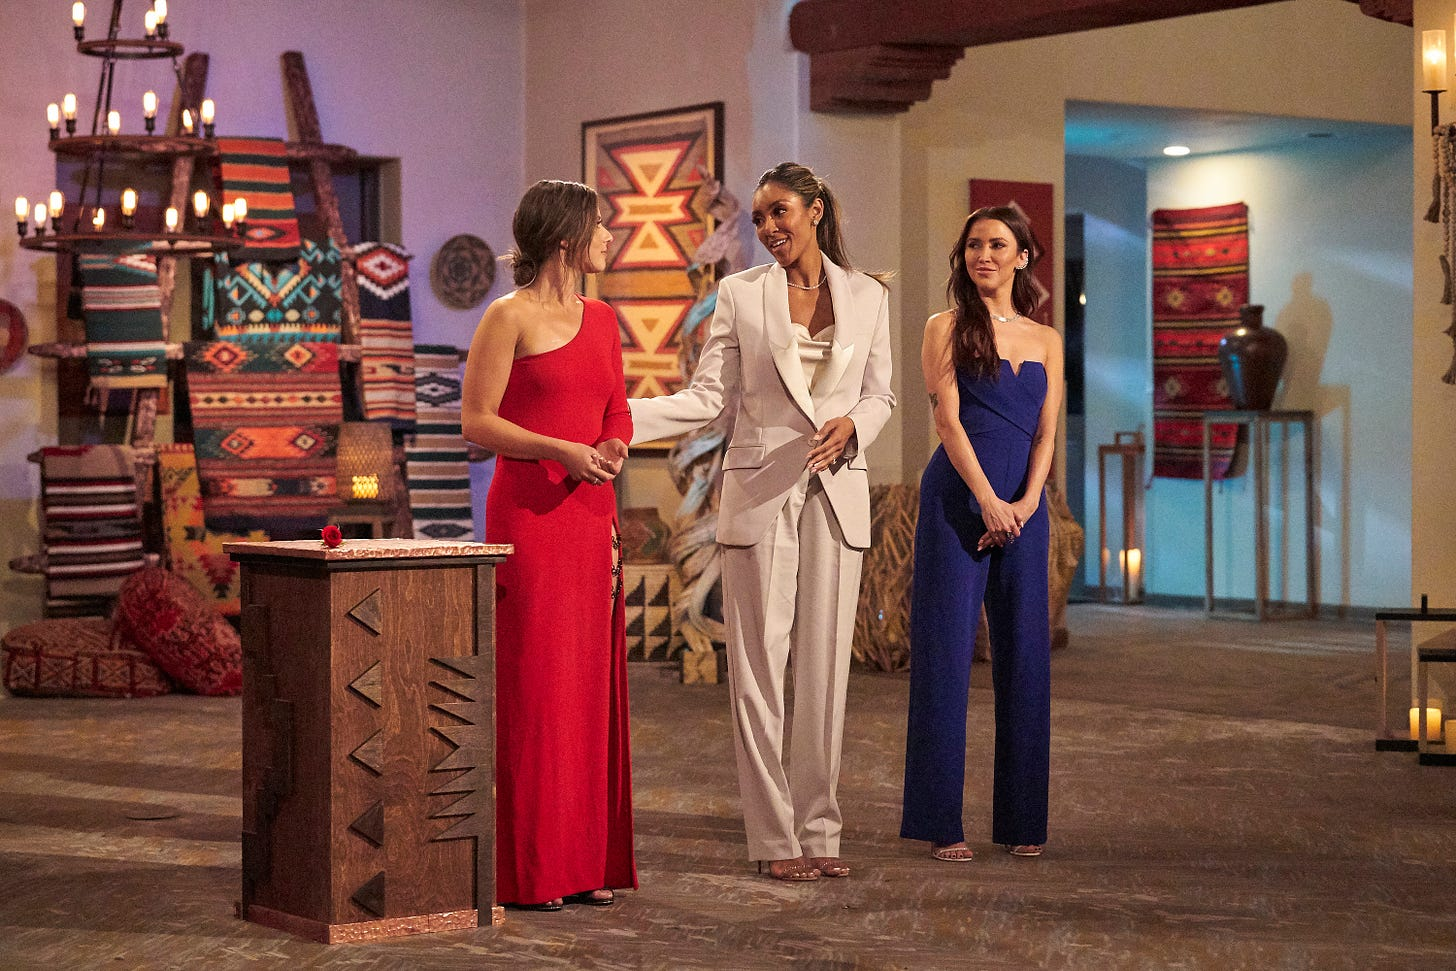 In the Bachelorette as in Jane Austen, stand by your sisters - Season 17 bachelorette Katie Thurston has Tayshia Adams and Kaitlyn Bristowe, just like Elizabeth Bennet had sister Jane.